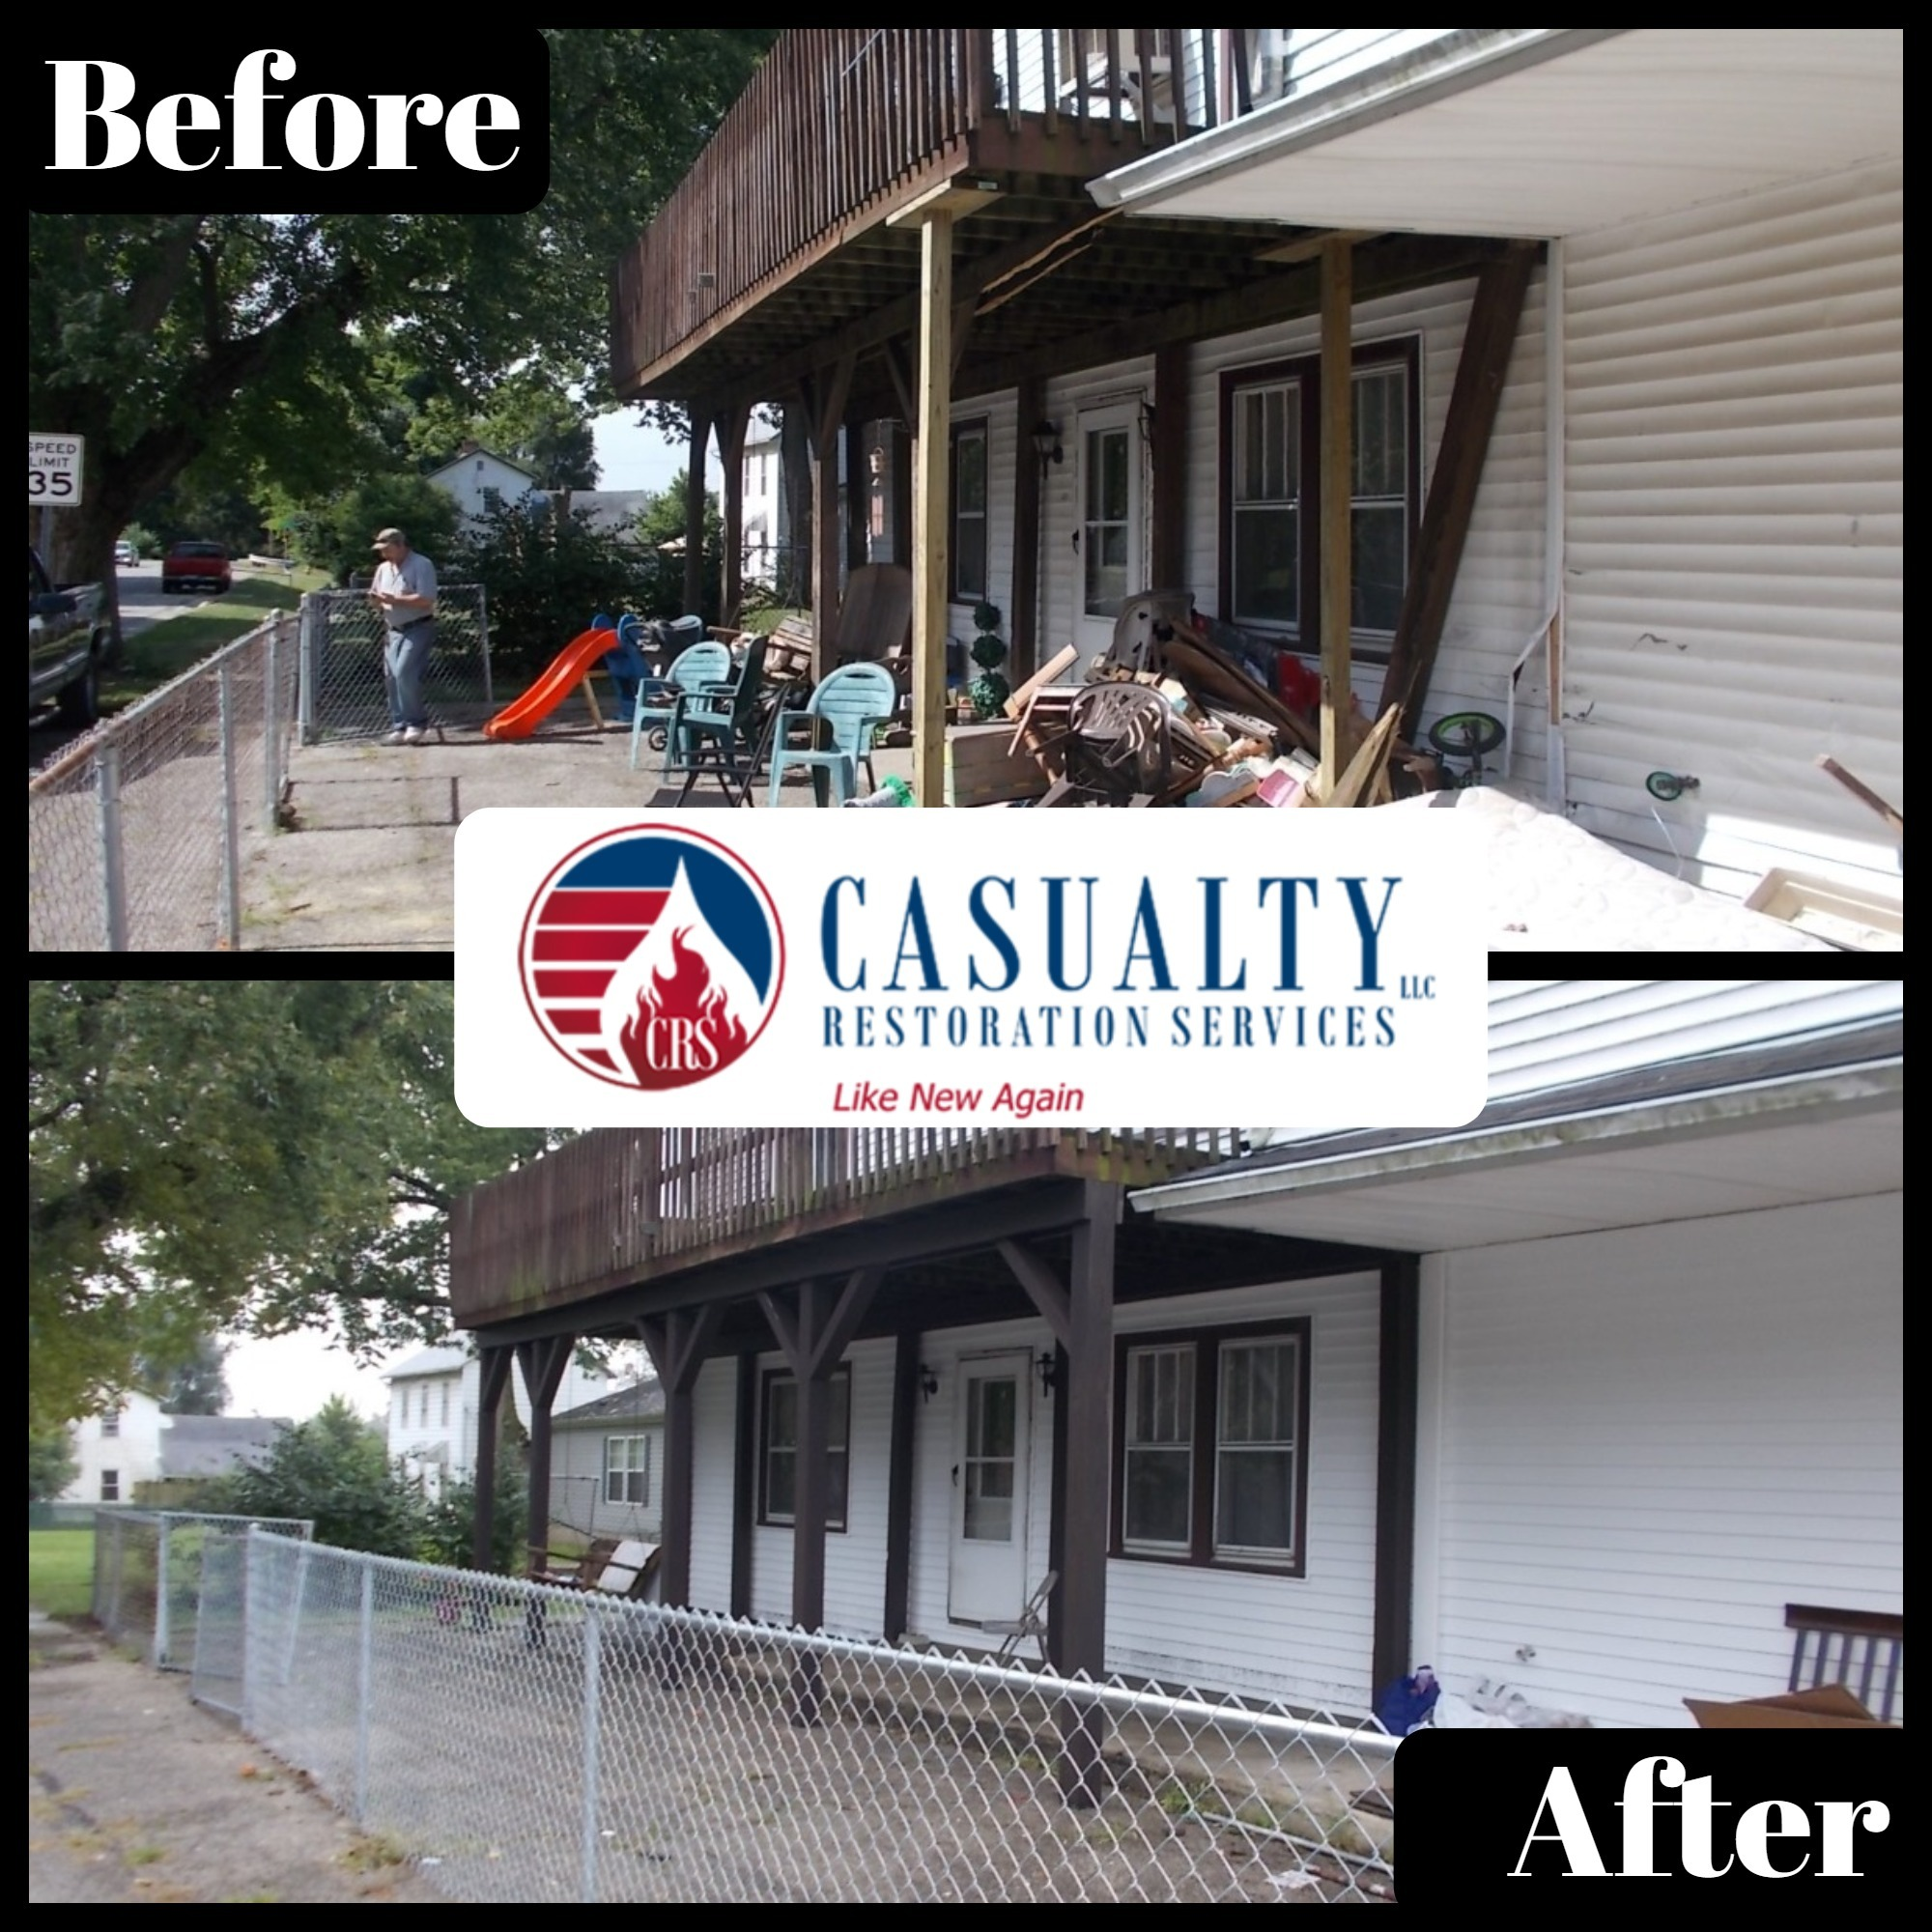 Casualty Restoration Services